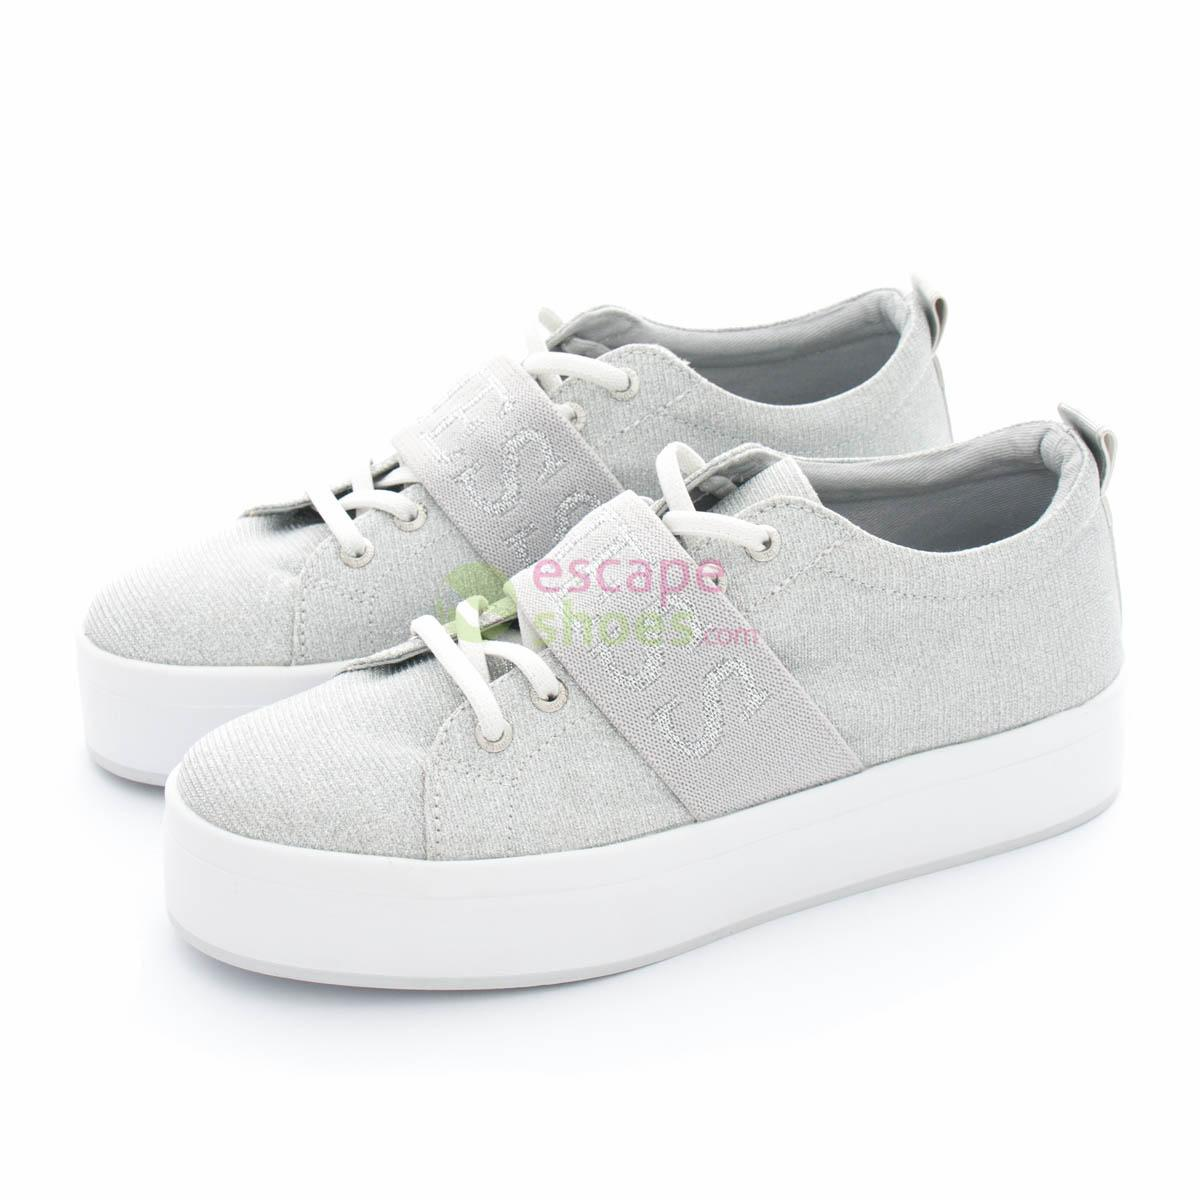 984b3b42467 Buy your sneakers guess fhelka metallic silver flfhe fam jpg 1200x1200 Shoes  from guess